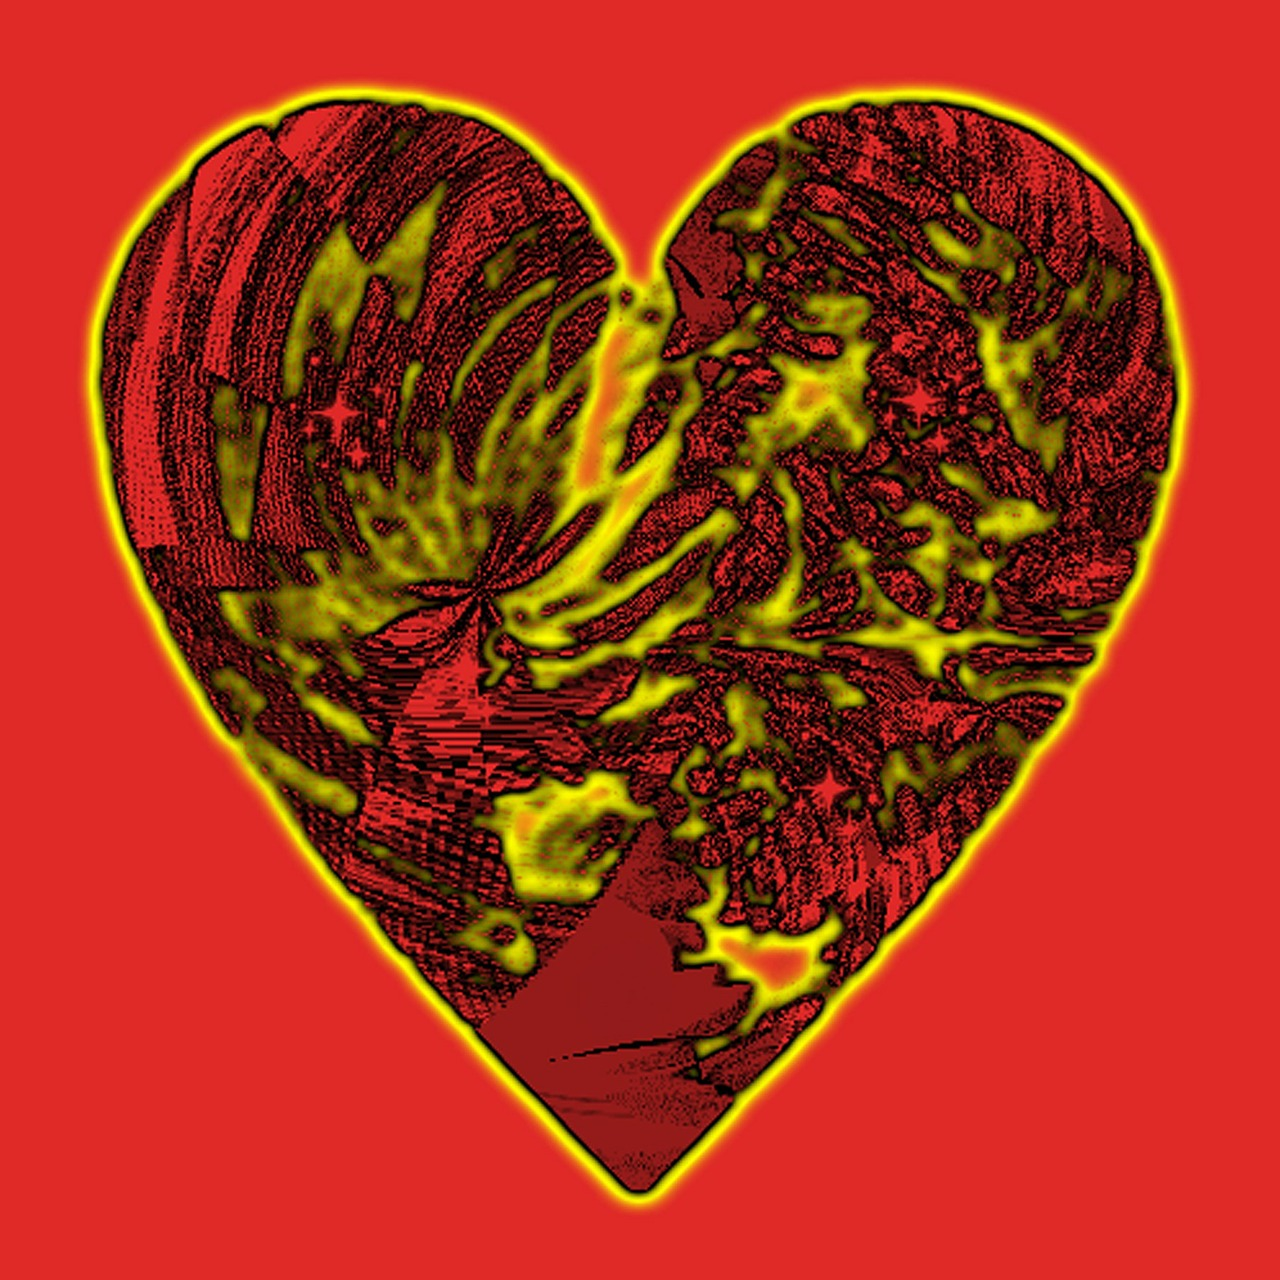 heart red yellow free photo